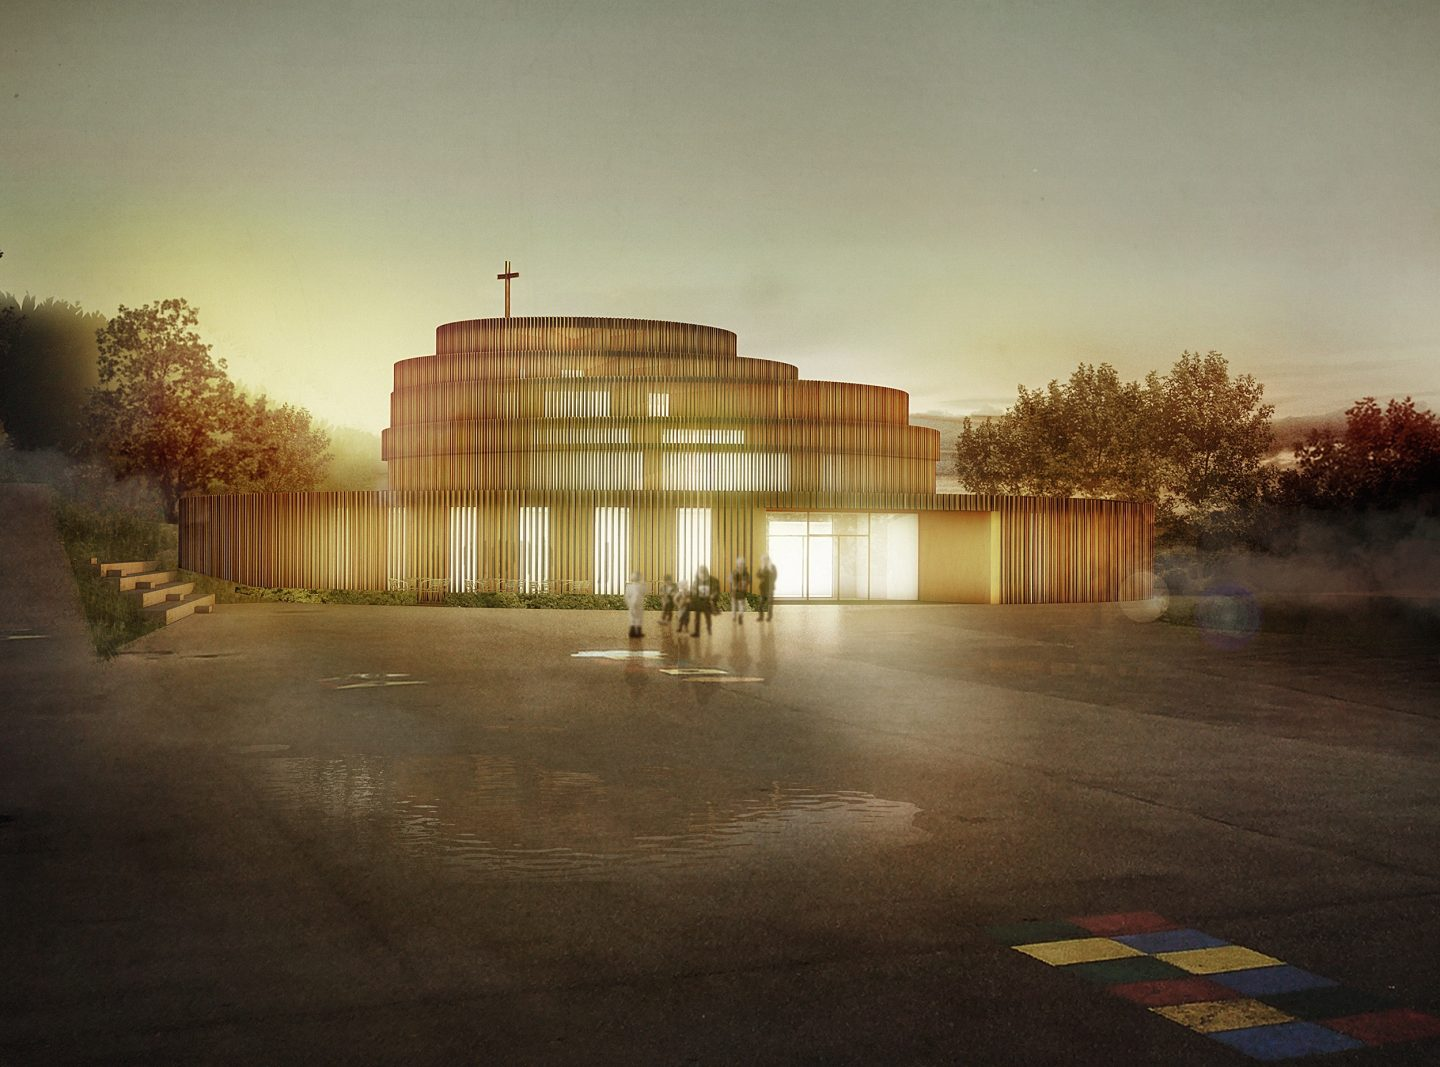 St. Thomas Church, Inwil ZG. Hildebrand Studios AG, Architecture and Urban Design in Zurich, Switzerland